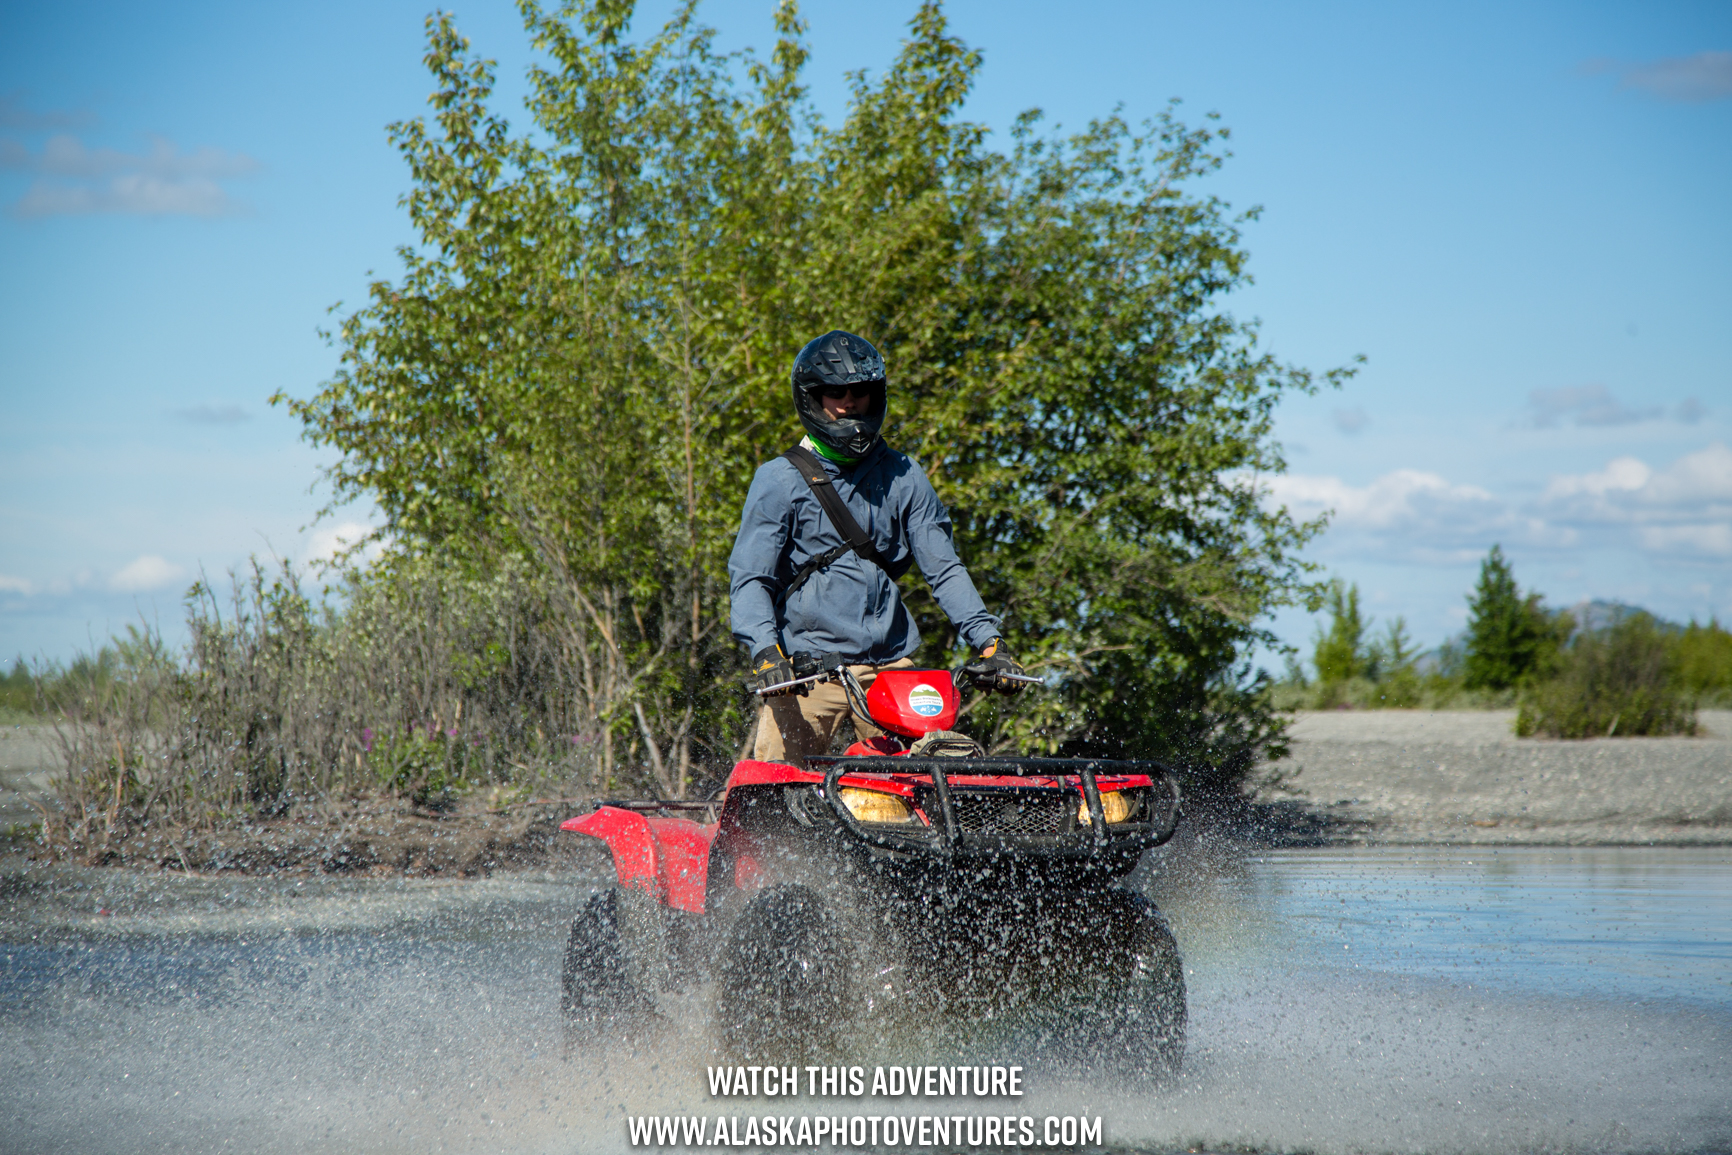 Alaskan ATV adventure